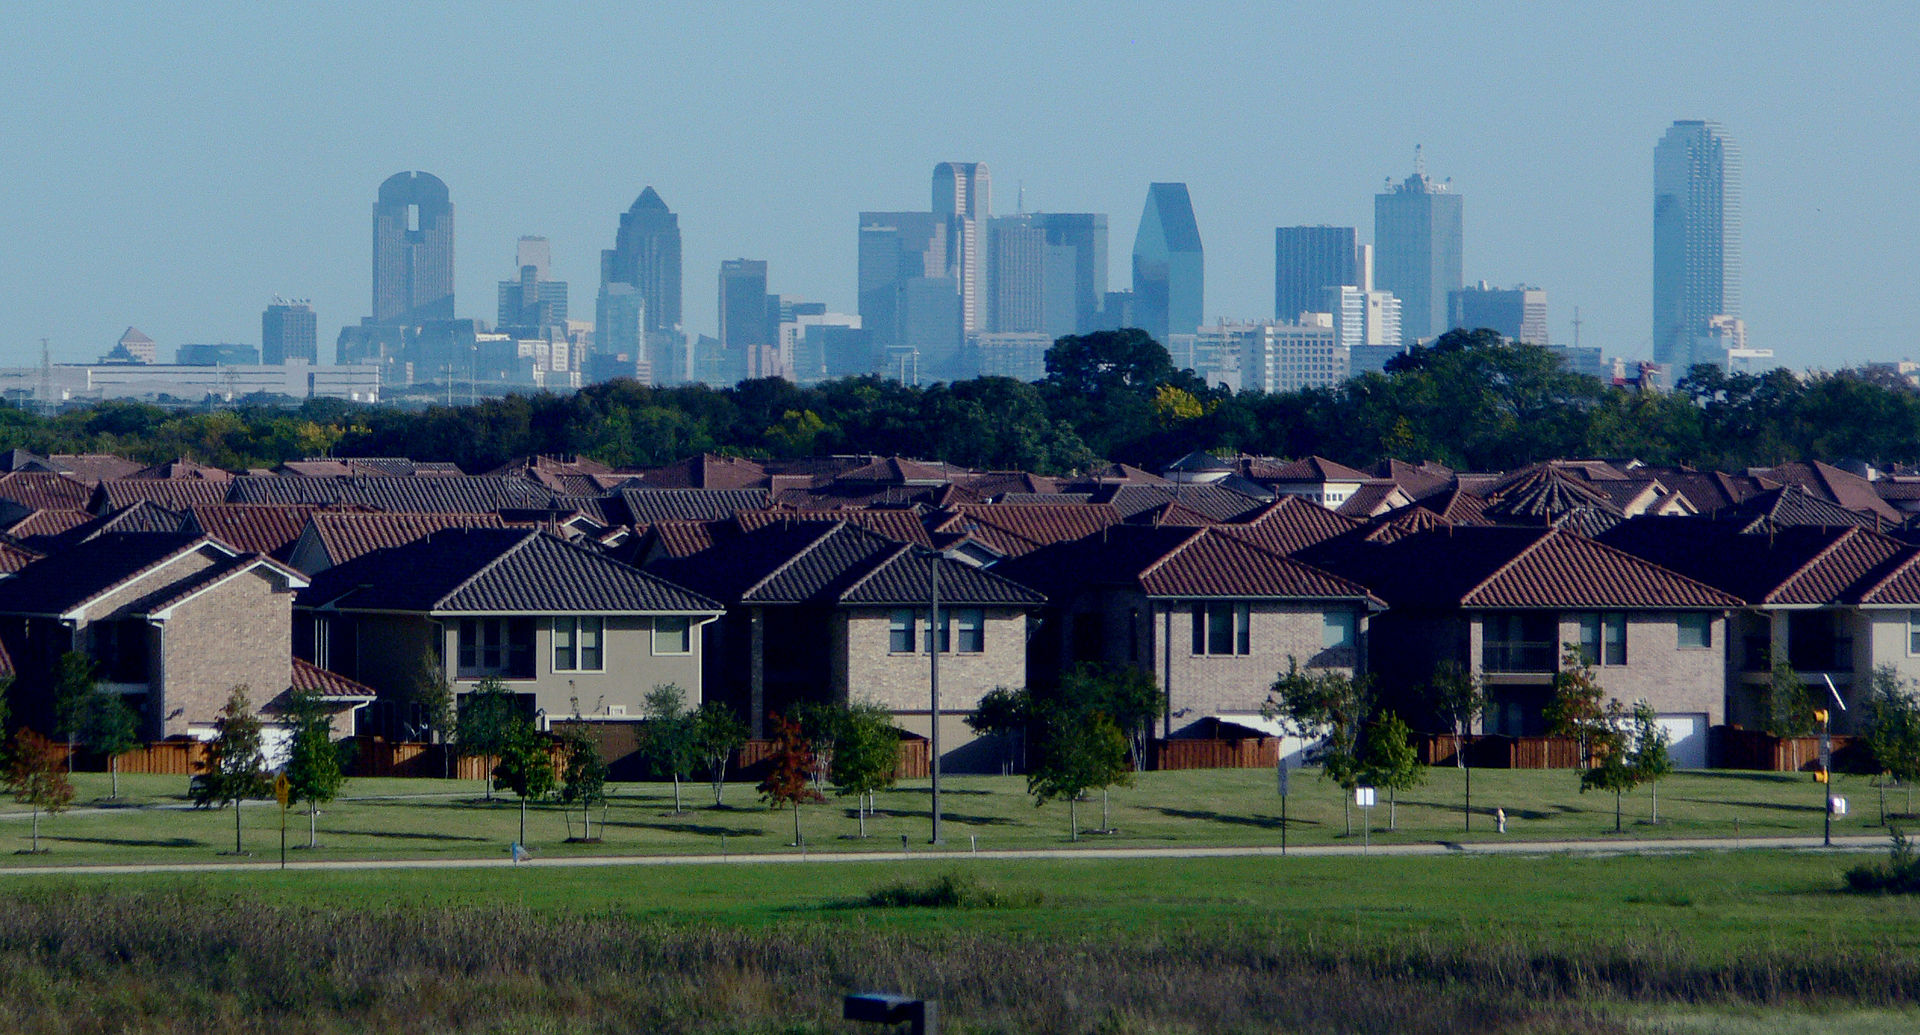 Postmodernism and the Suburbs